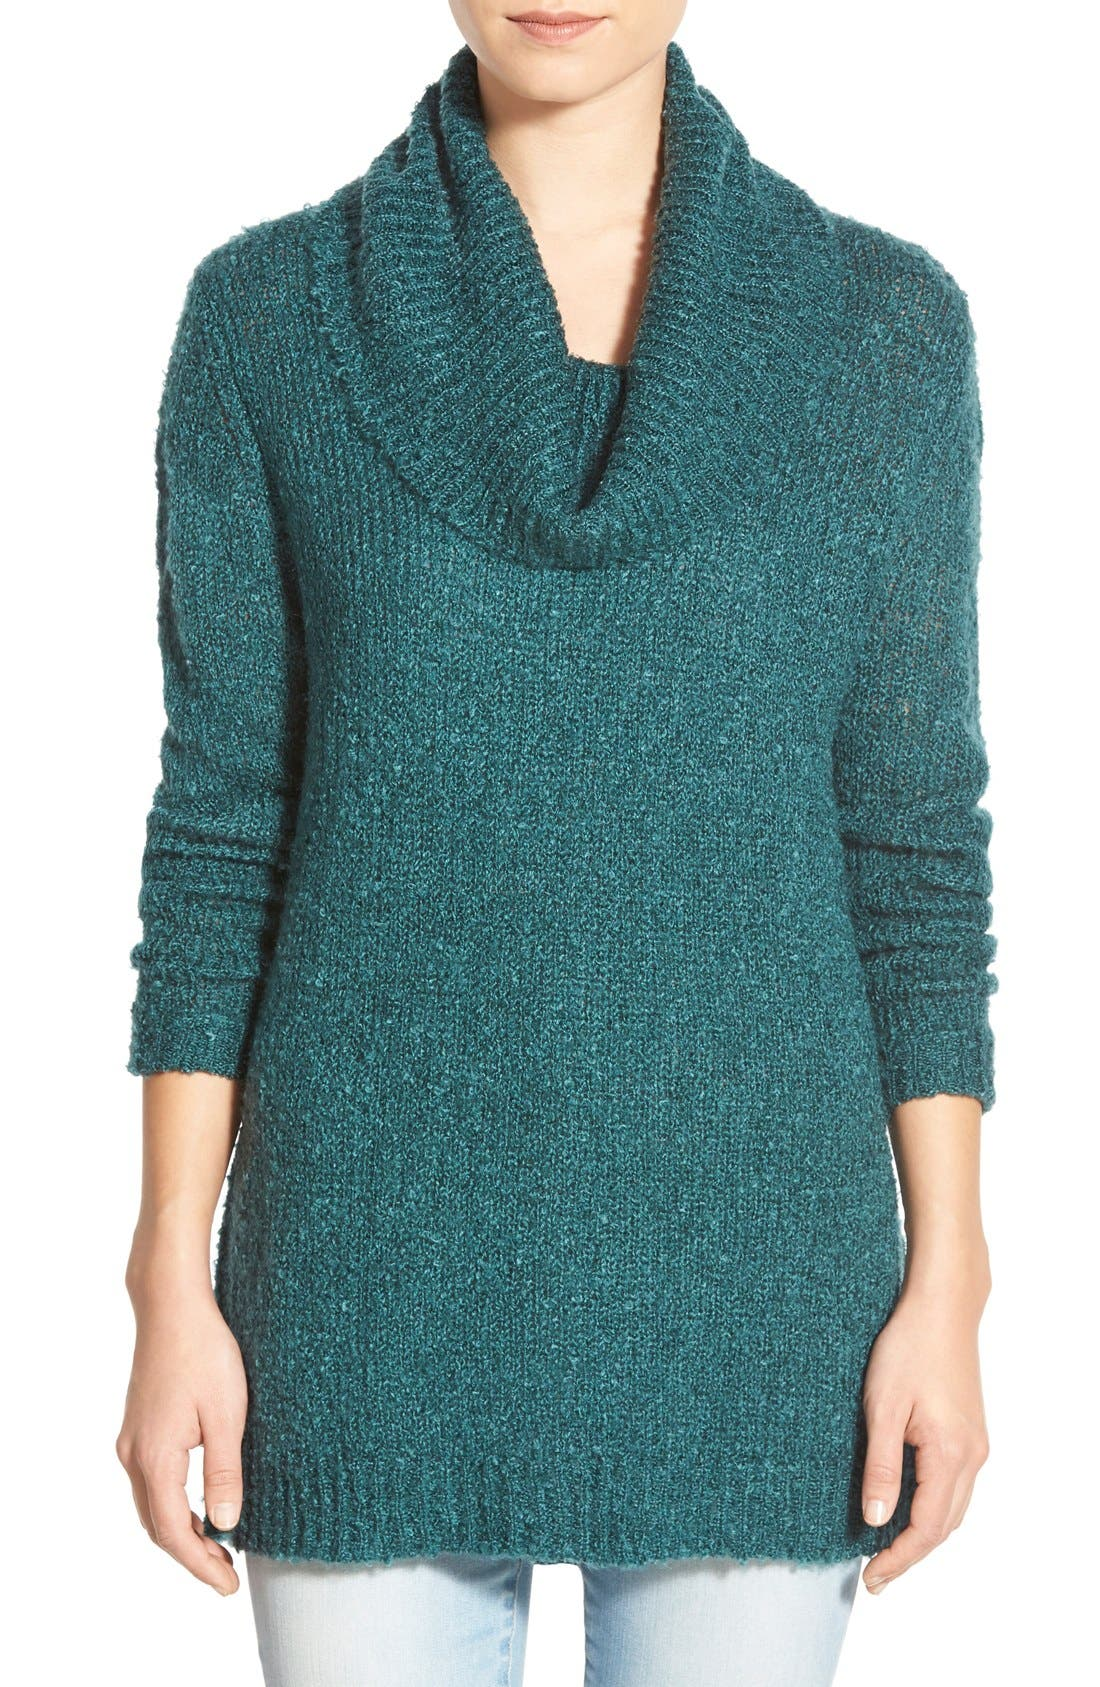 Main Image - BP. Cowl Neck Tunic Sweater